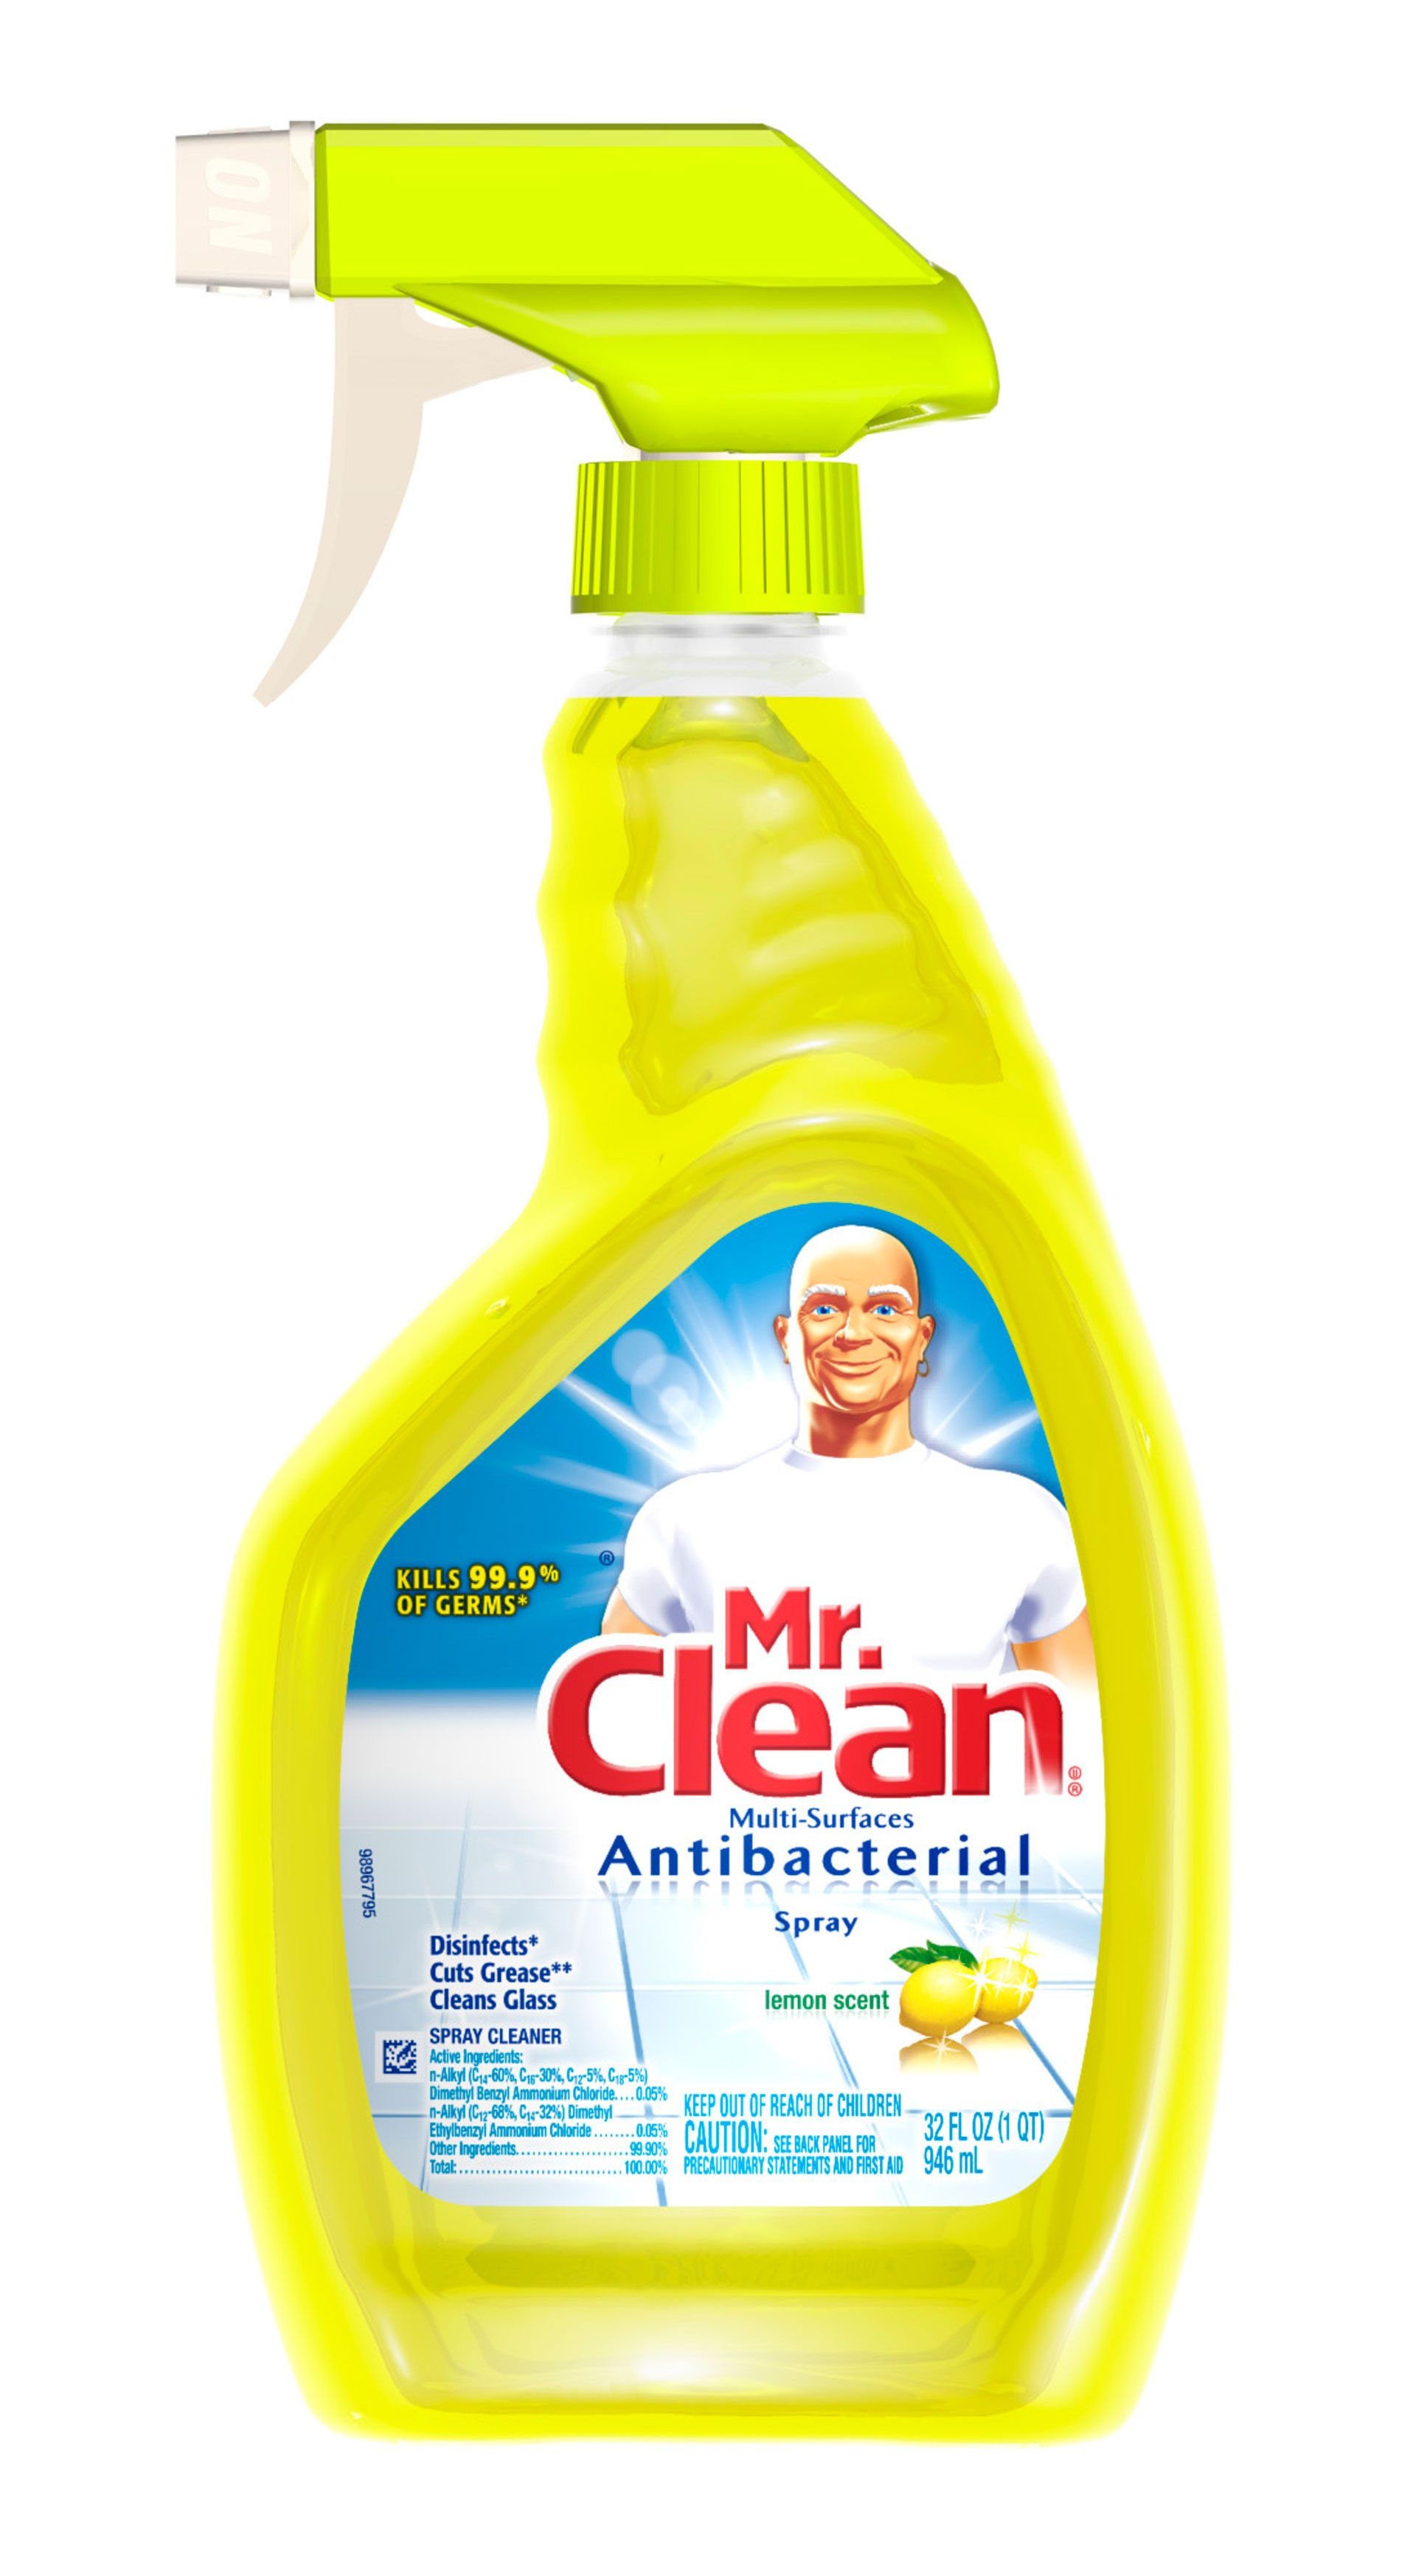 antibacterial spray